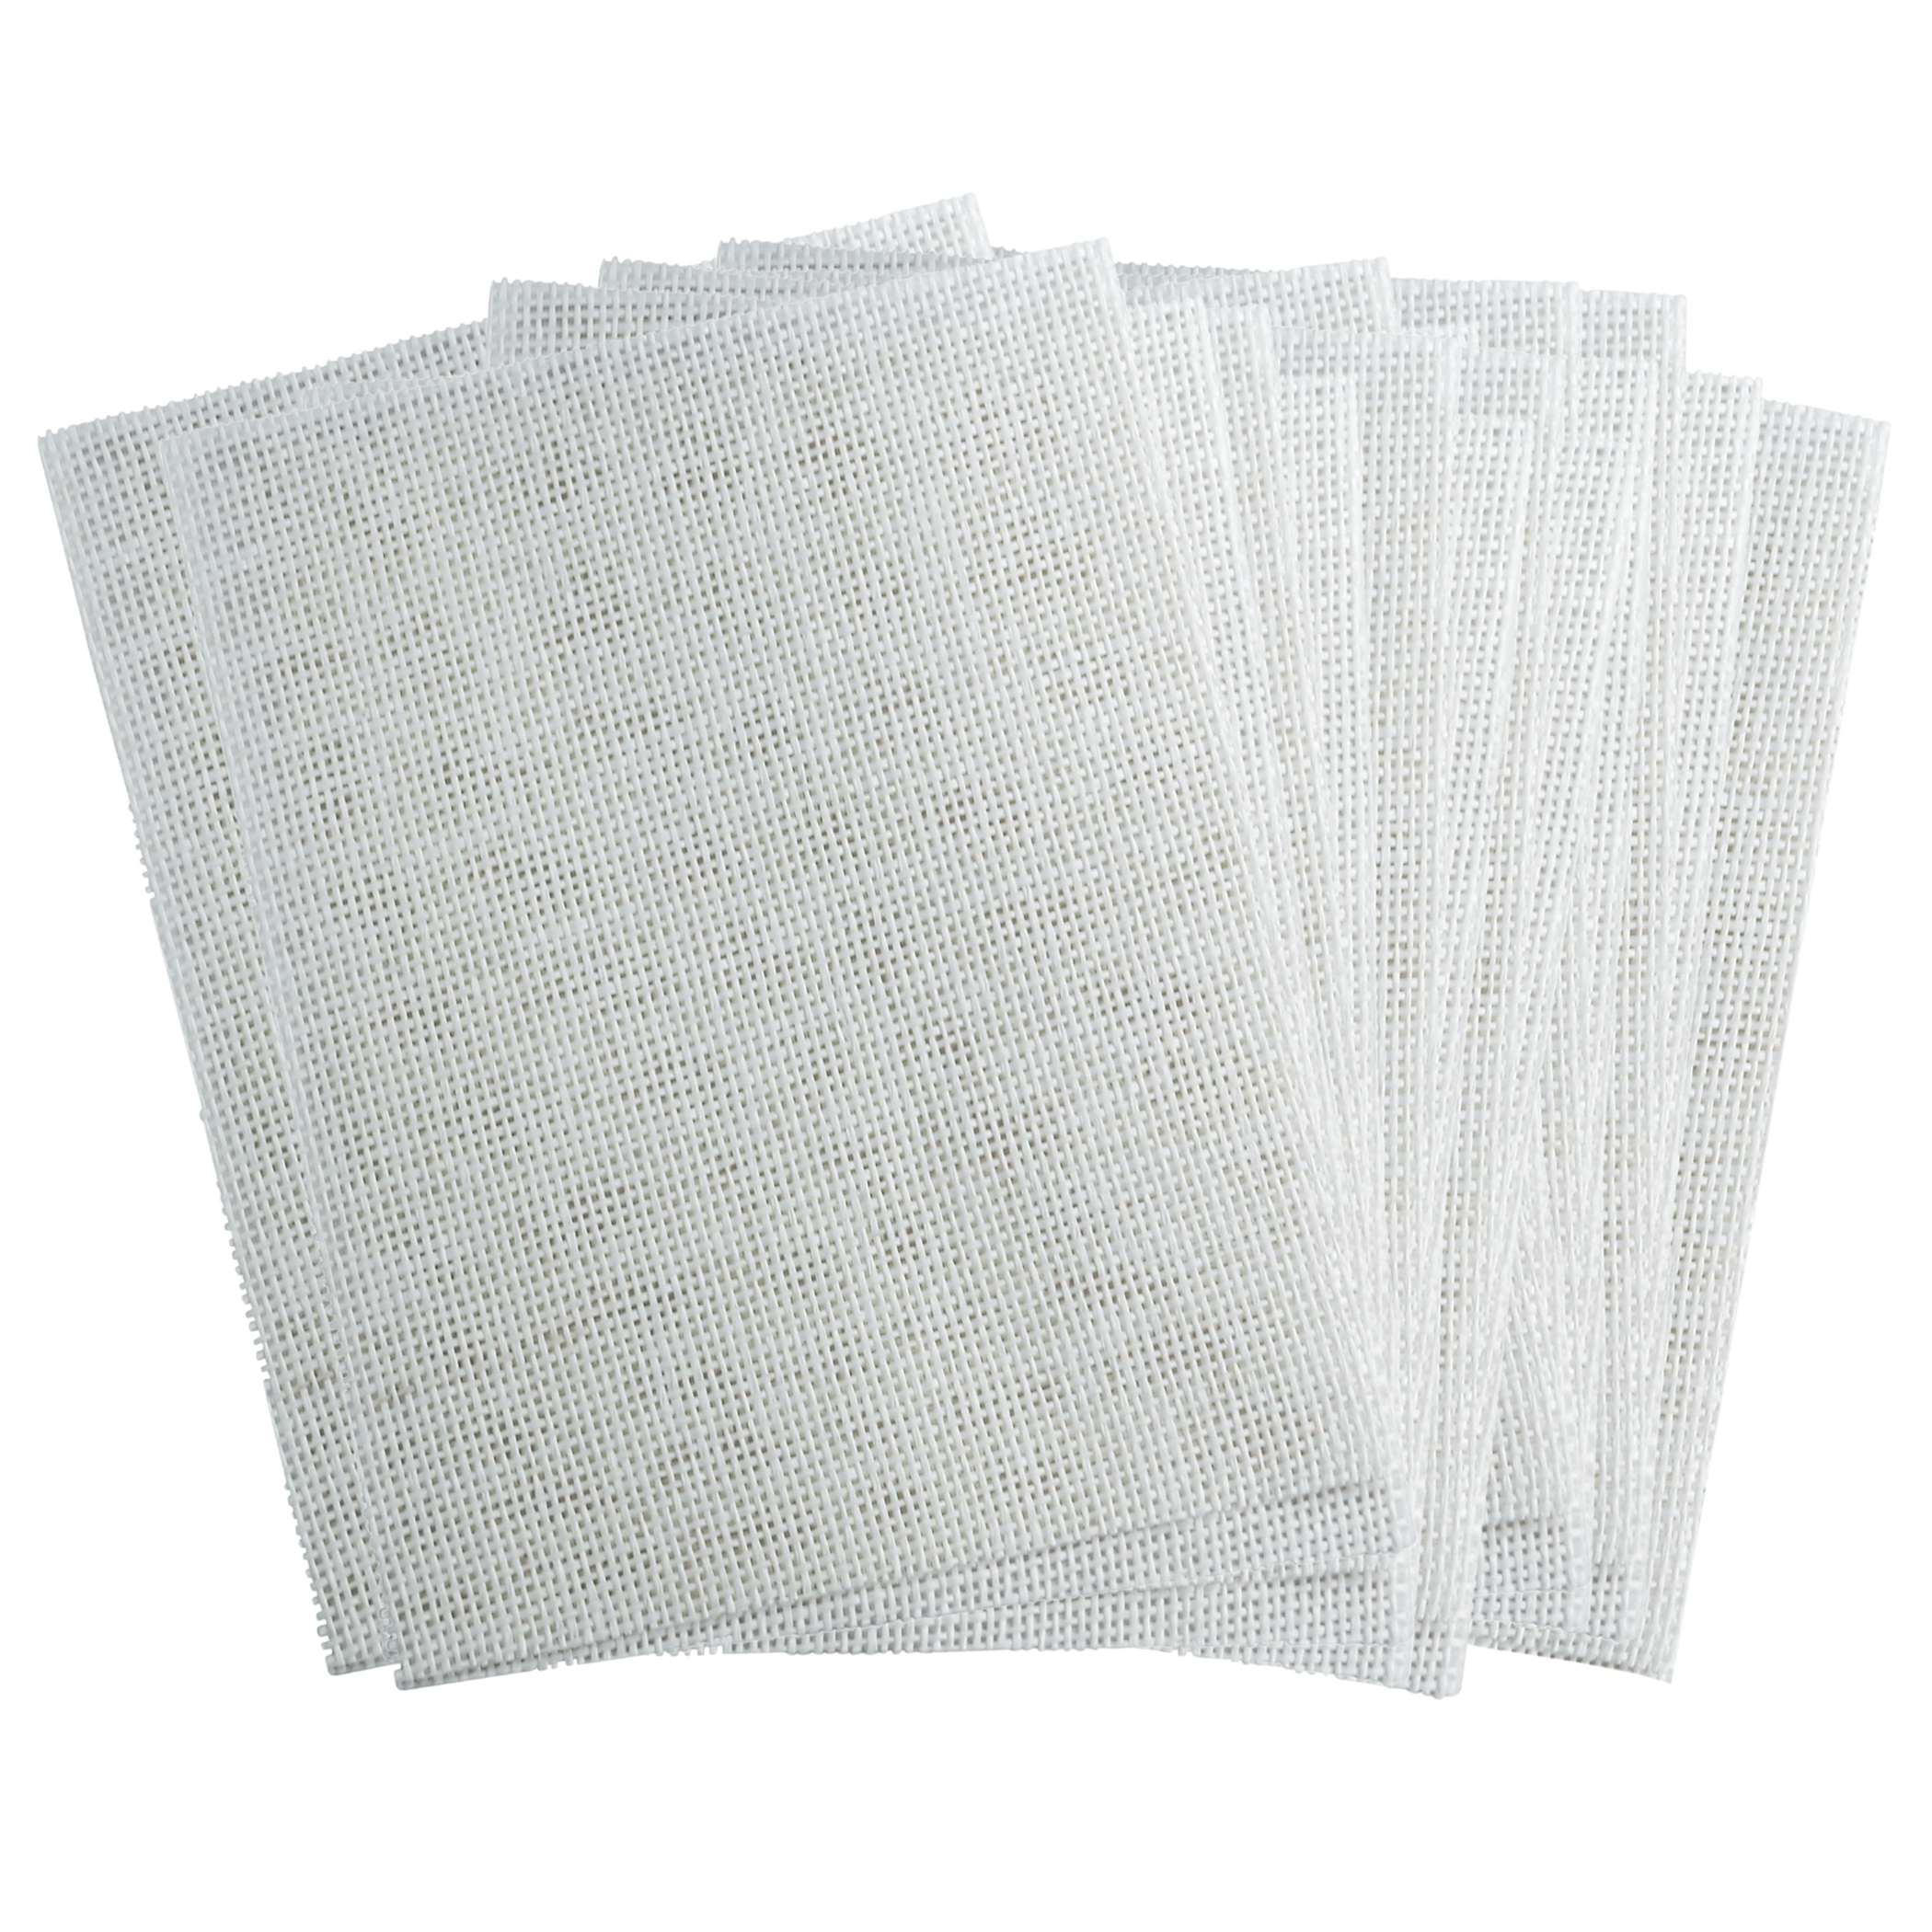 "Roylco® Paper Mesh, 7"" x 10"", White - 24 Sheets per pack, Set of 3 packs"